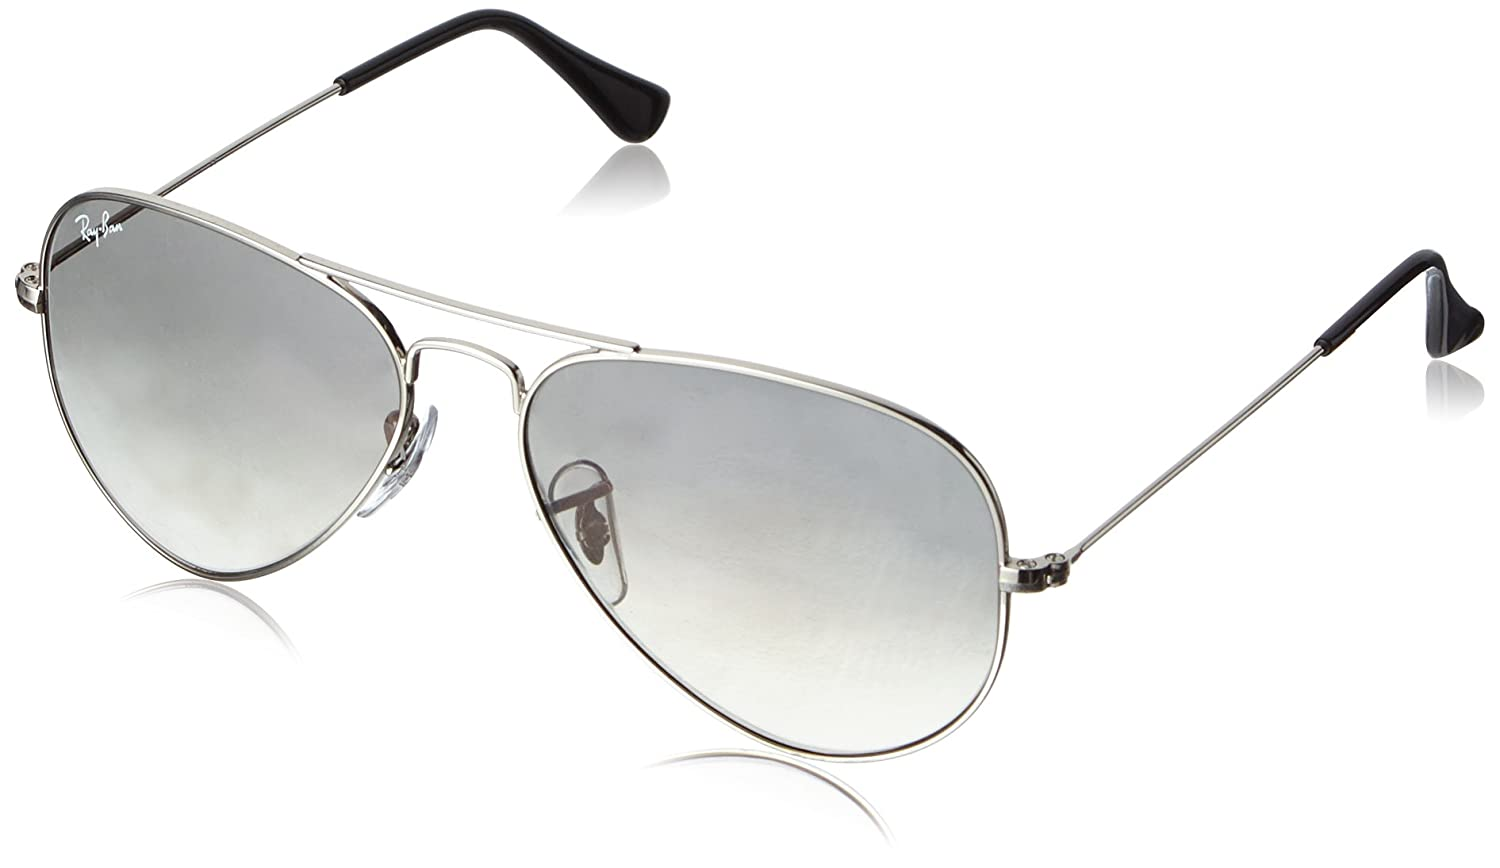 ray ban aviator rb3025 price  Ray-Ban 0rb3025 Polarized Aviator Sunglasses, Black, 58 mm: Amazon ...